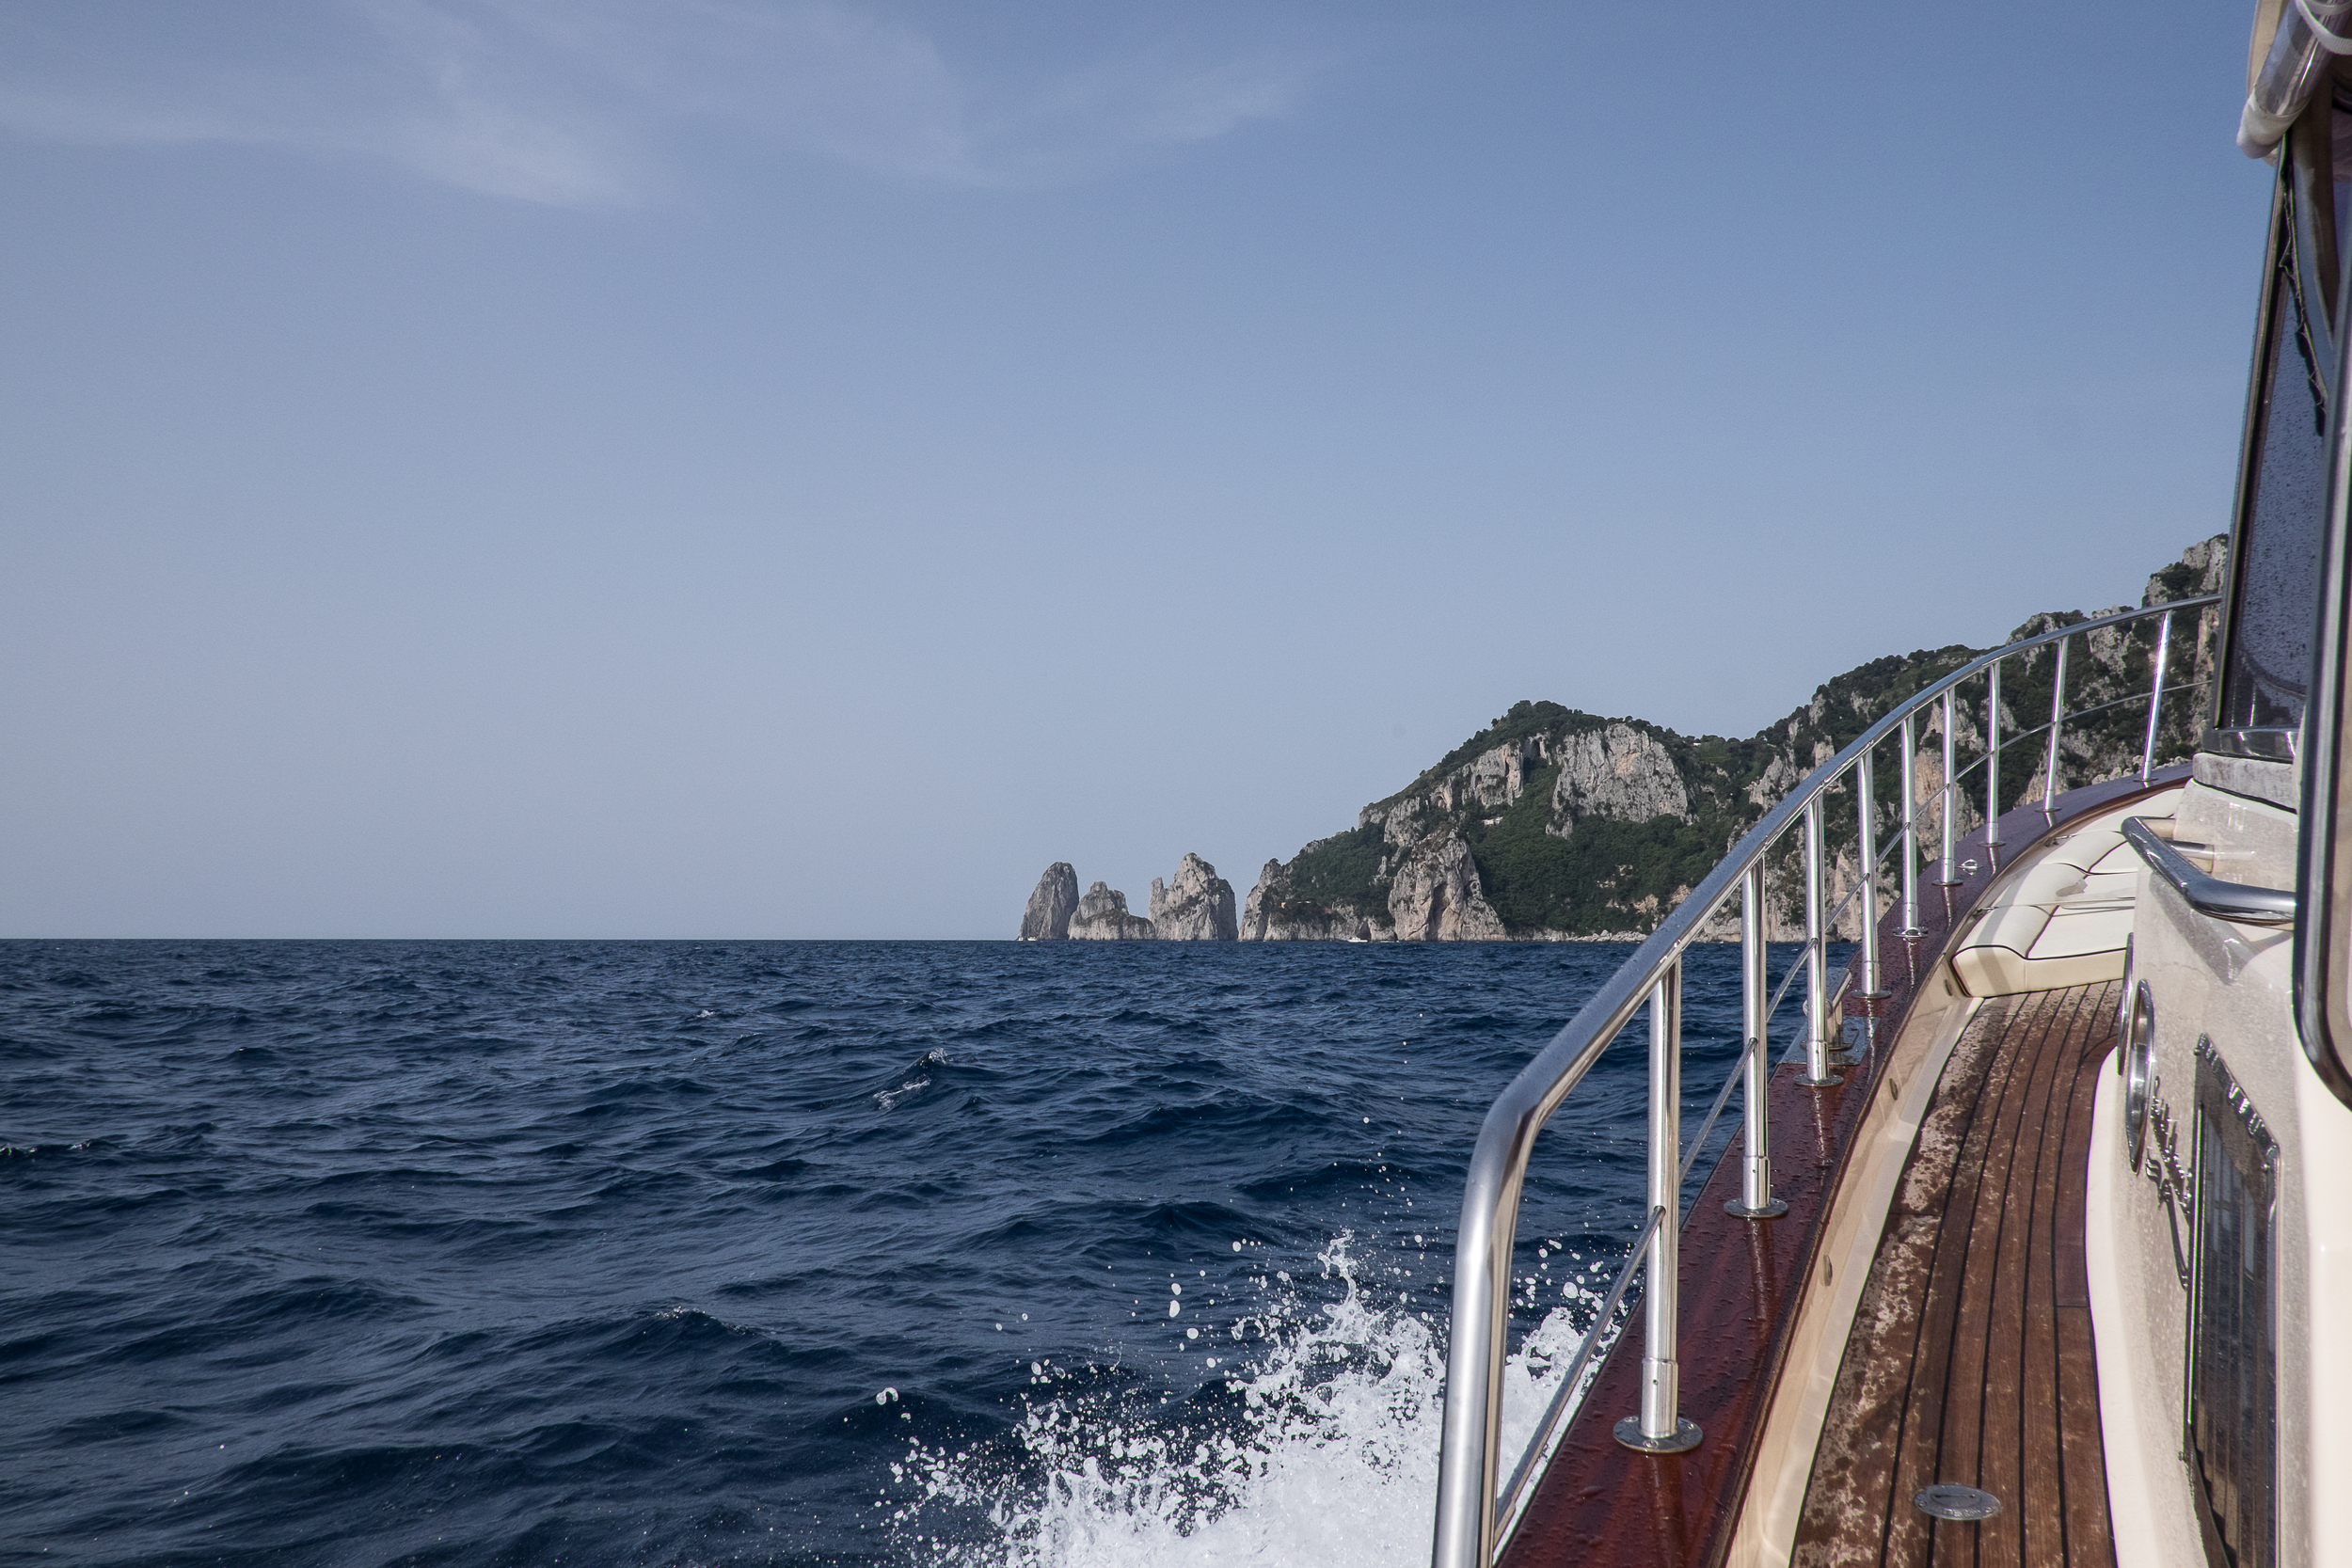 On the Boat to Capri